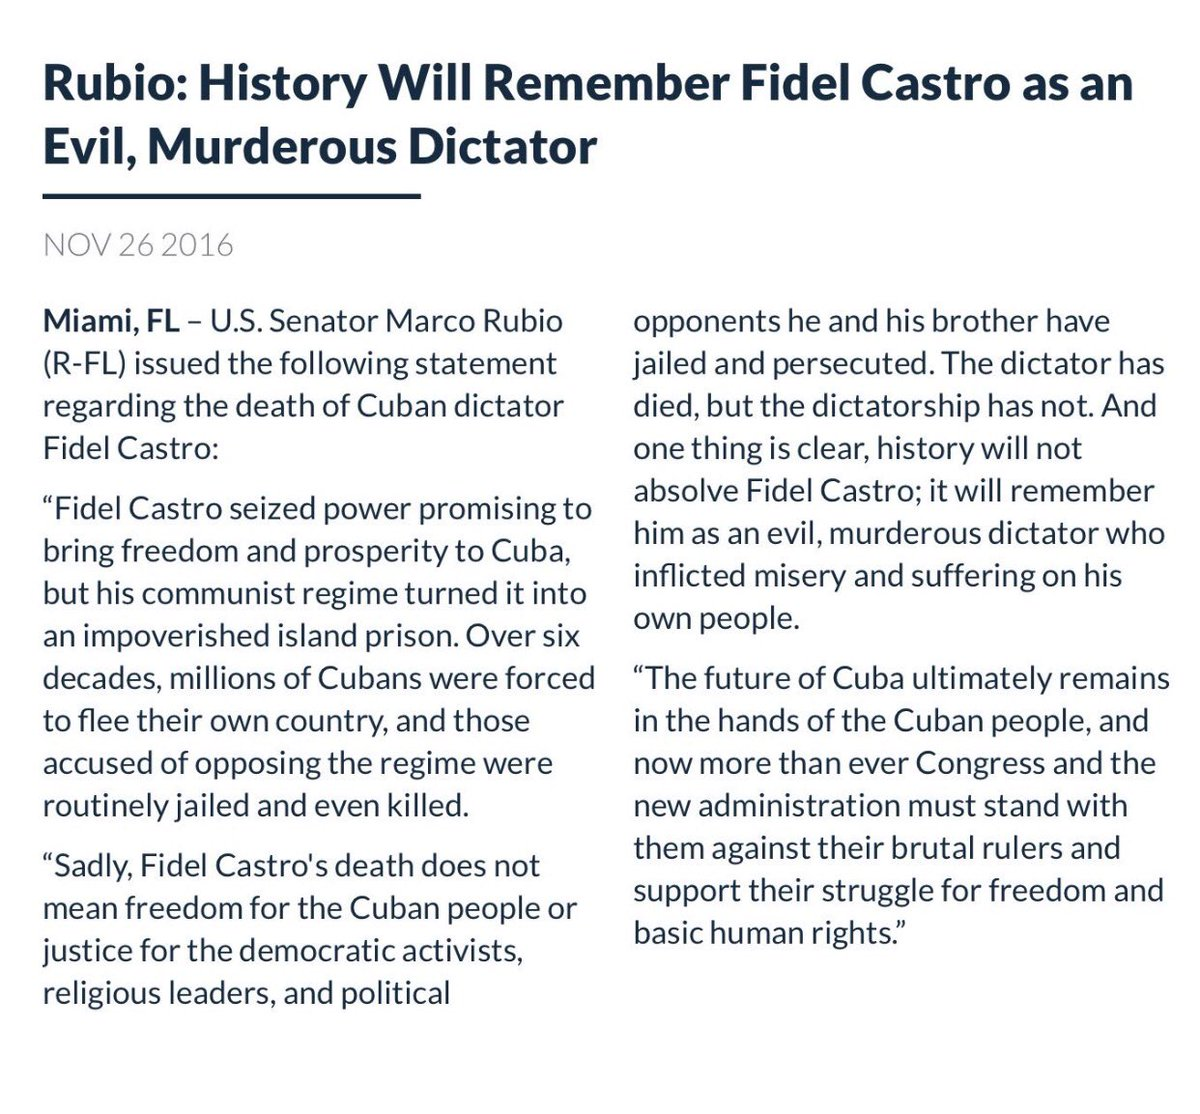 History will remember Fidel Castro as an evil, murderous dictator who inflicted misery & suffering on his own people https://t.co/Y7207S6qVD